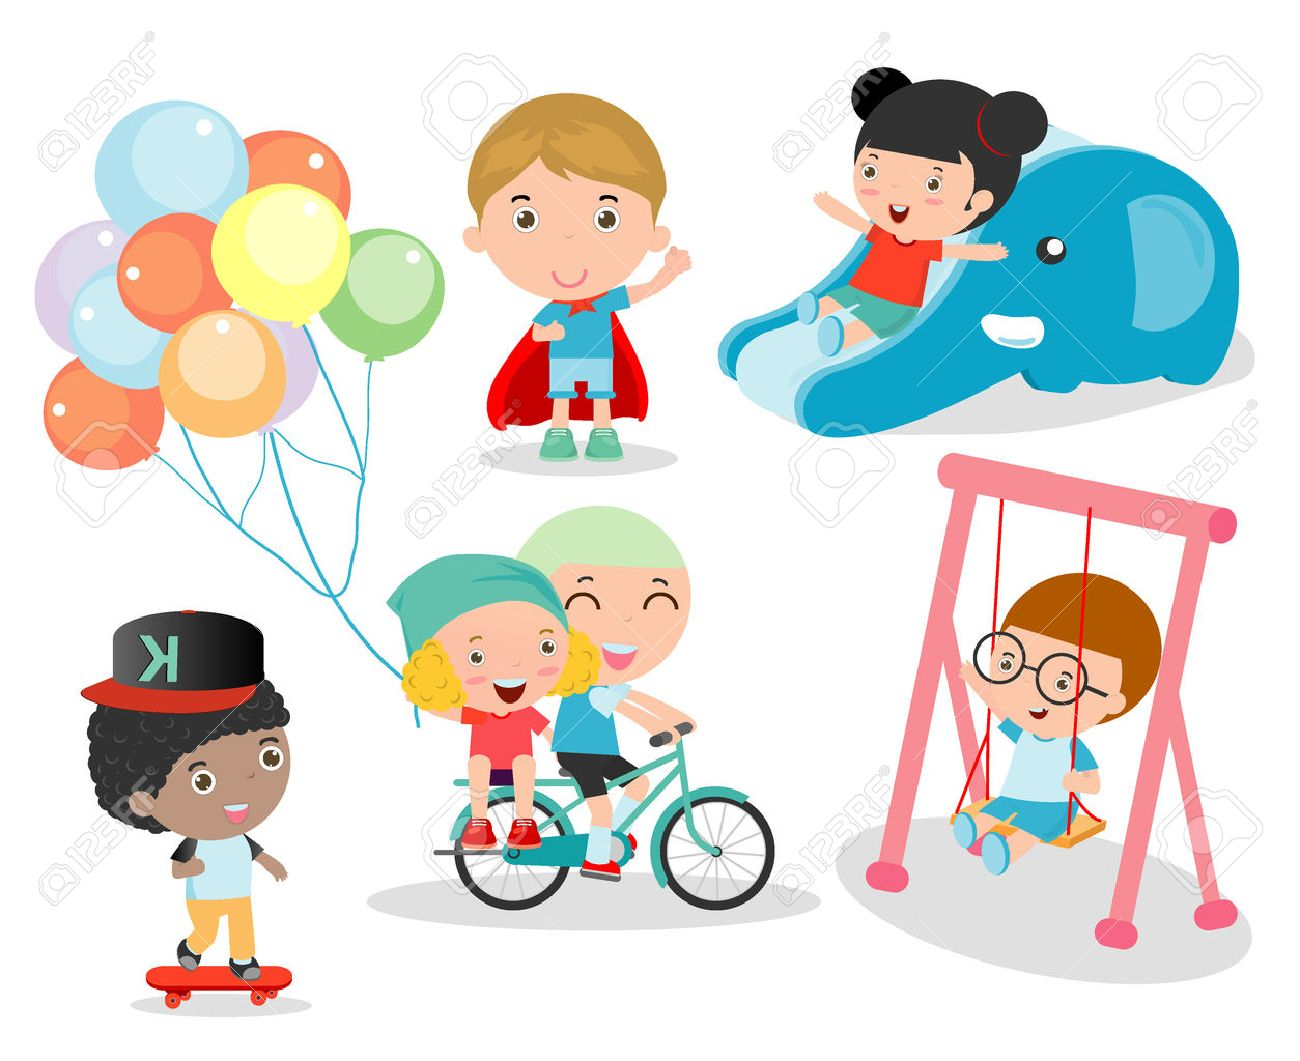 Compilation Of Kids Having Fun Outdoors Royalty Free Cliparts Vectors And Stock Illustration Image 46691484